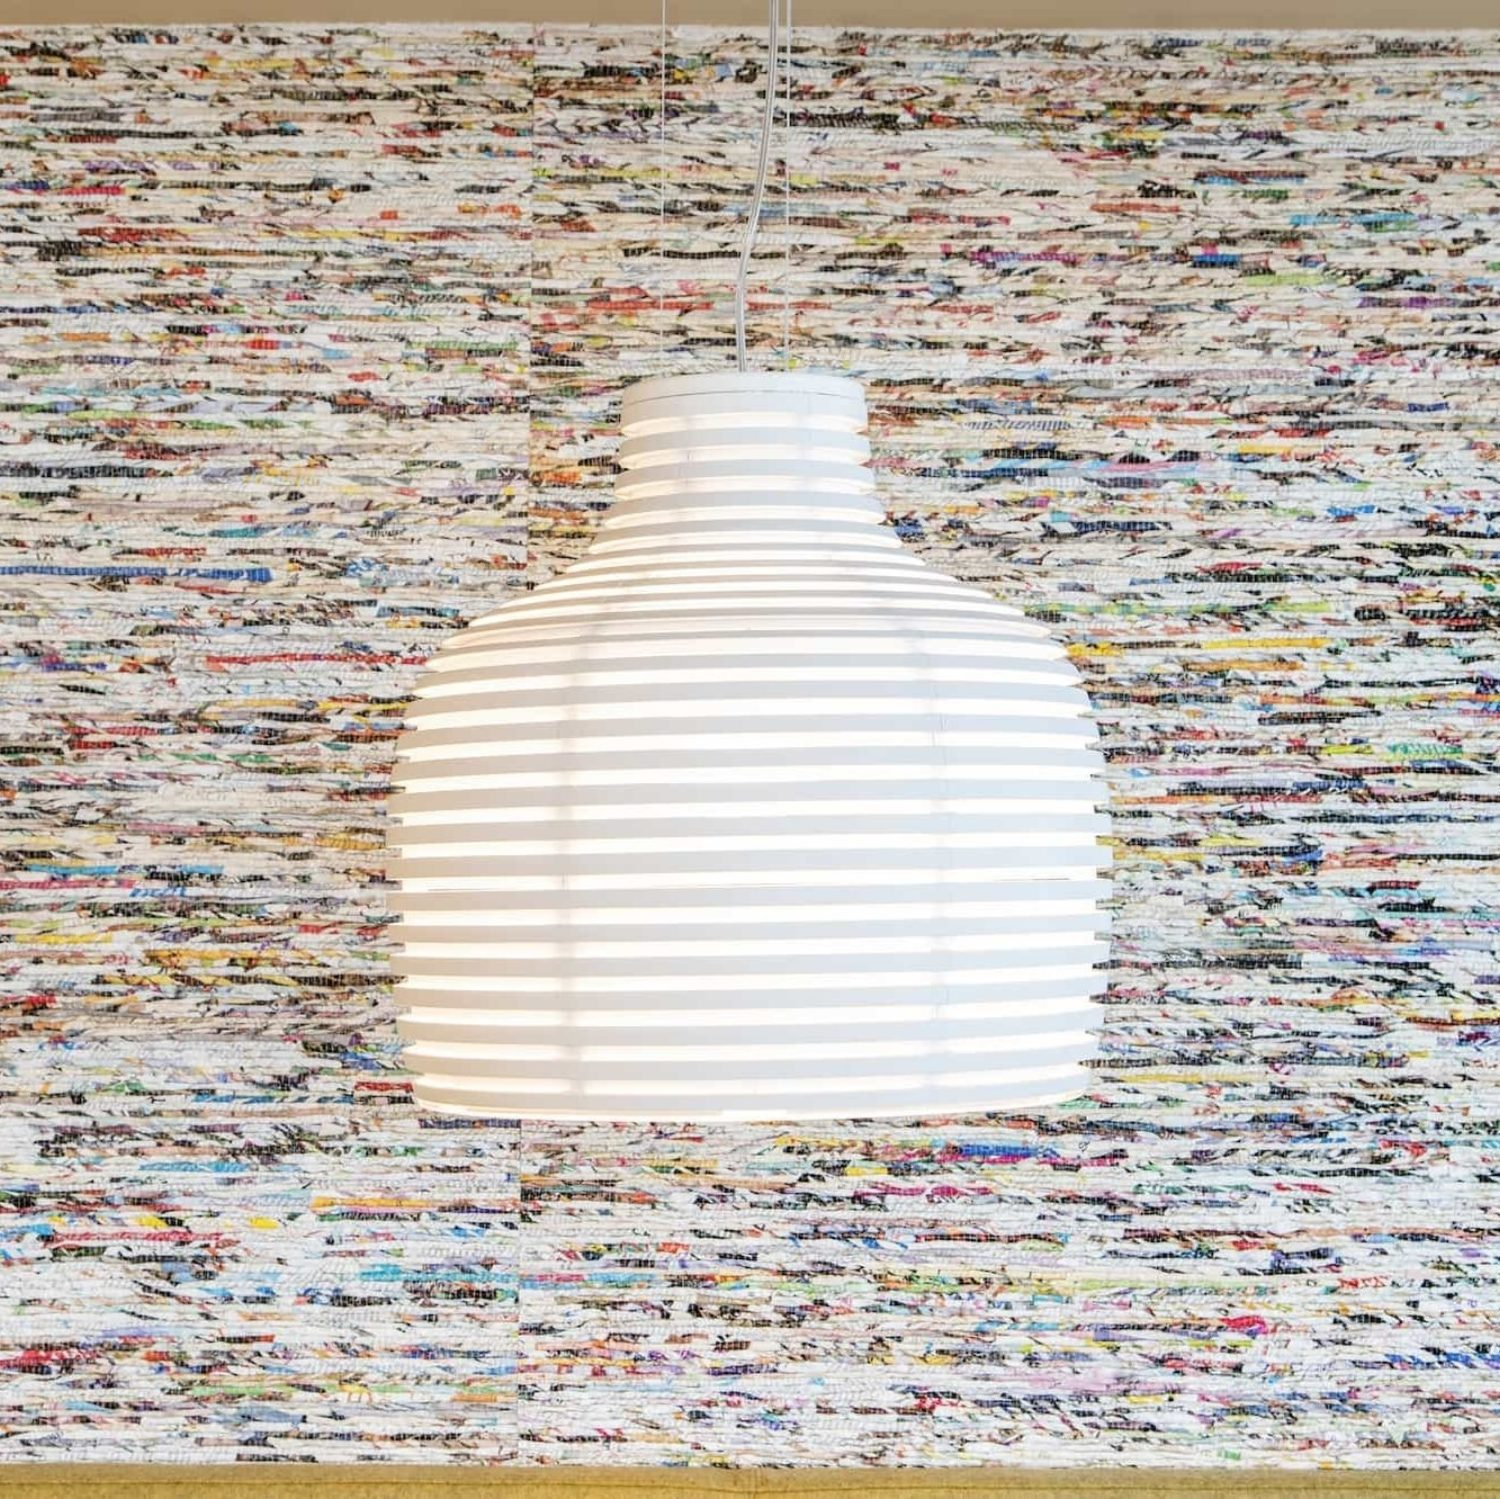 Textured wall and light from recycled materials